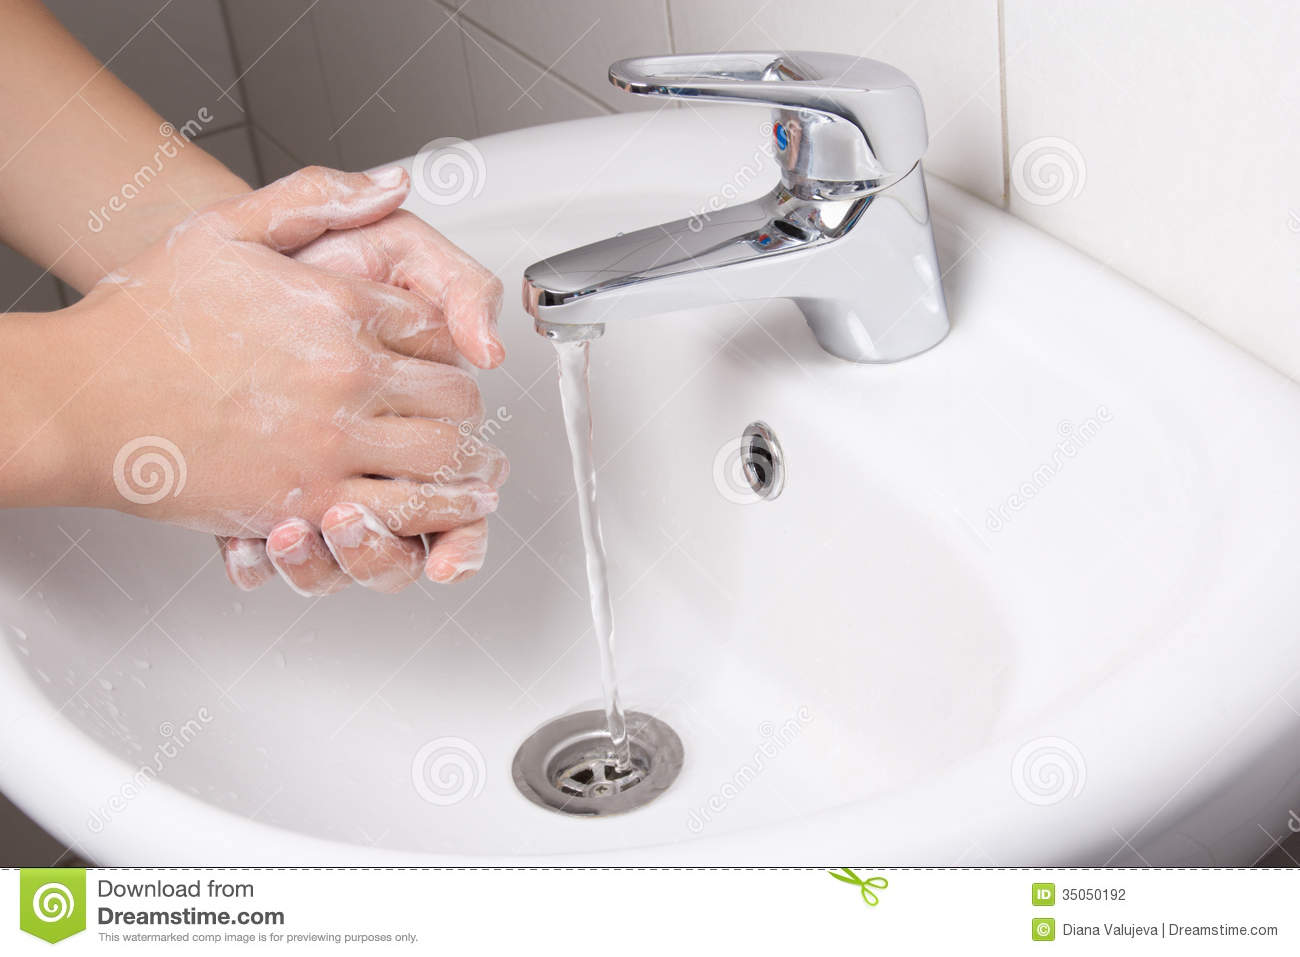 Man Washing His Hands In Bathroom Sink Stock Photography